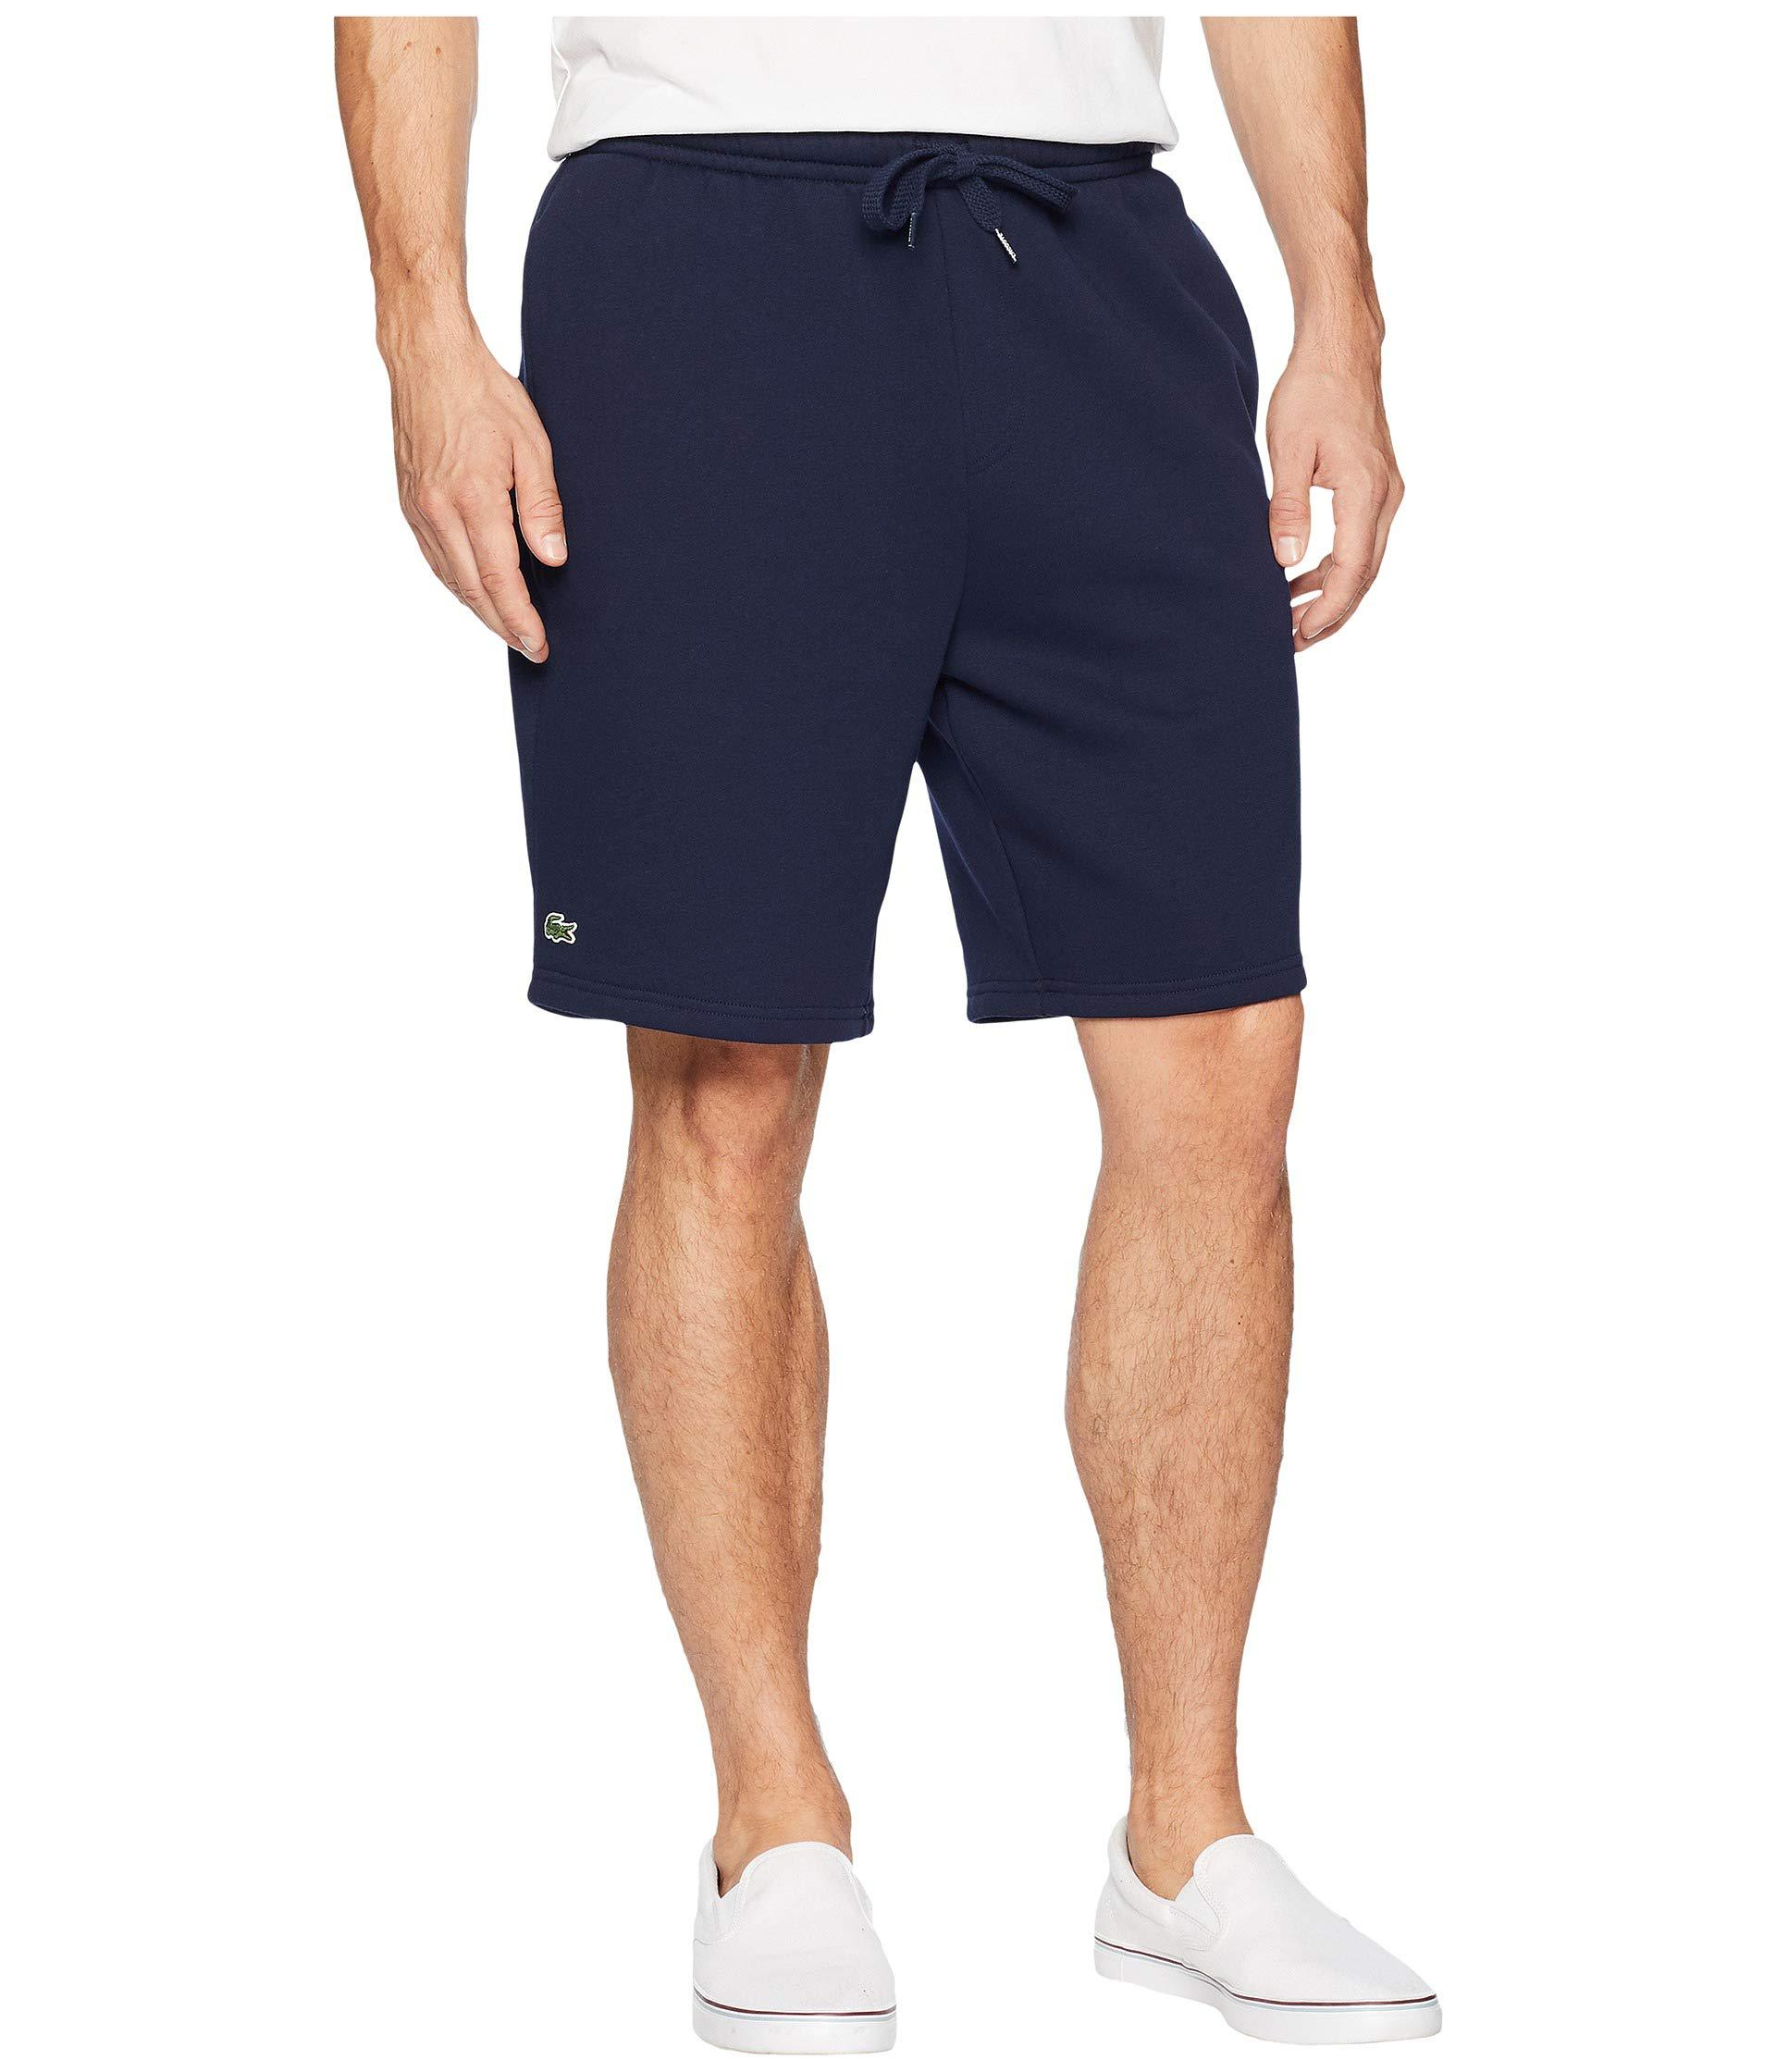 298aae576809f1 Lyst - Lacoste Sport Fleece Shorts (navy Blue) Men s Shorts in Blue ...